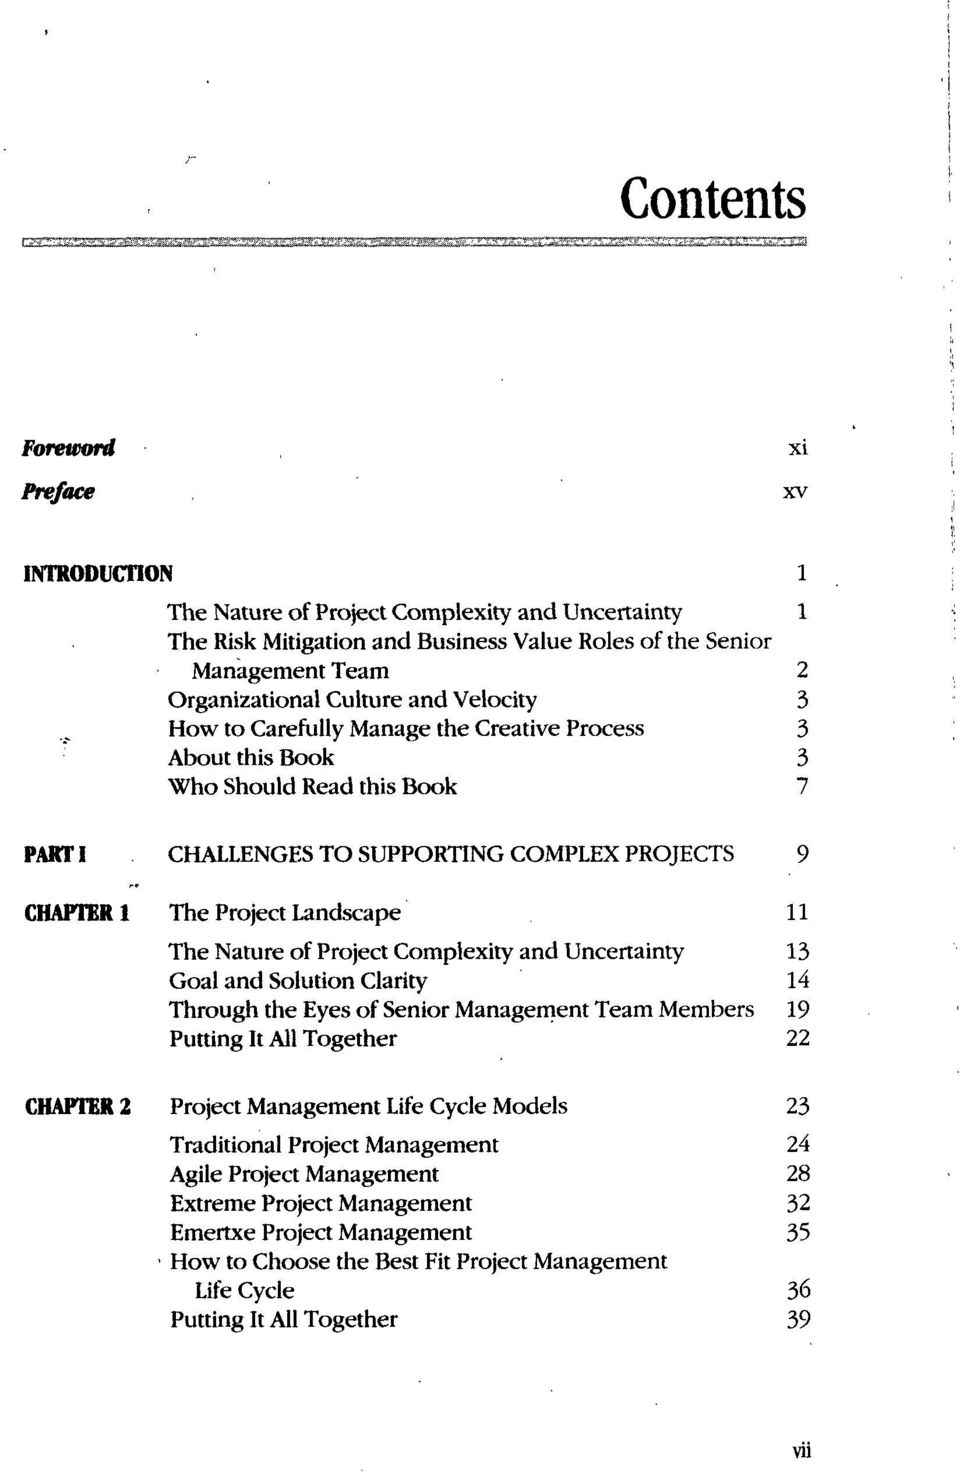 Landscape The Nature of Project Complexity and Uncertainty Goal and Solution Clarity Through the Eyes of Senior Management Team Members 9 11 1 14 19 22 CHAPTER 2 Project Management Life